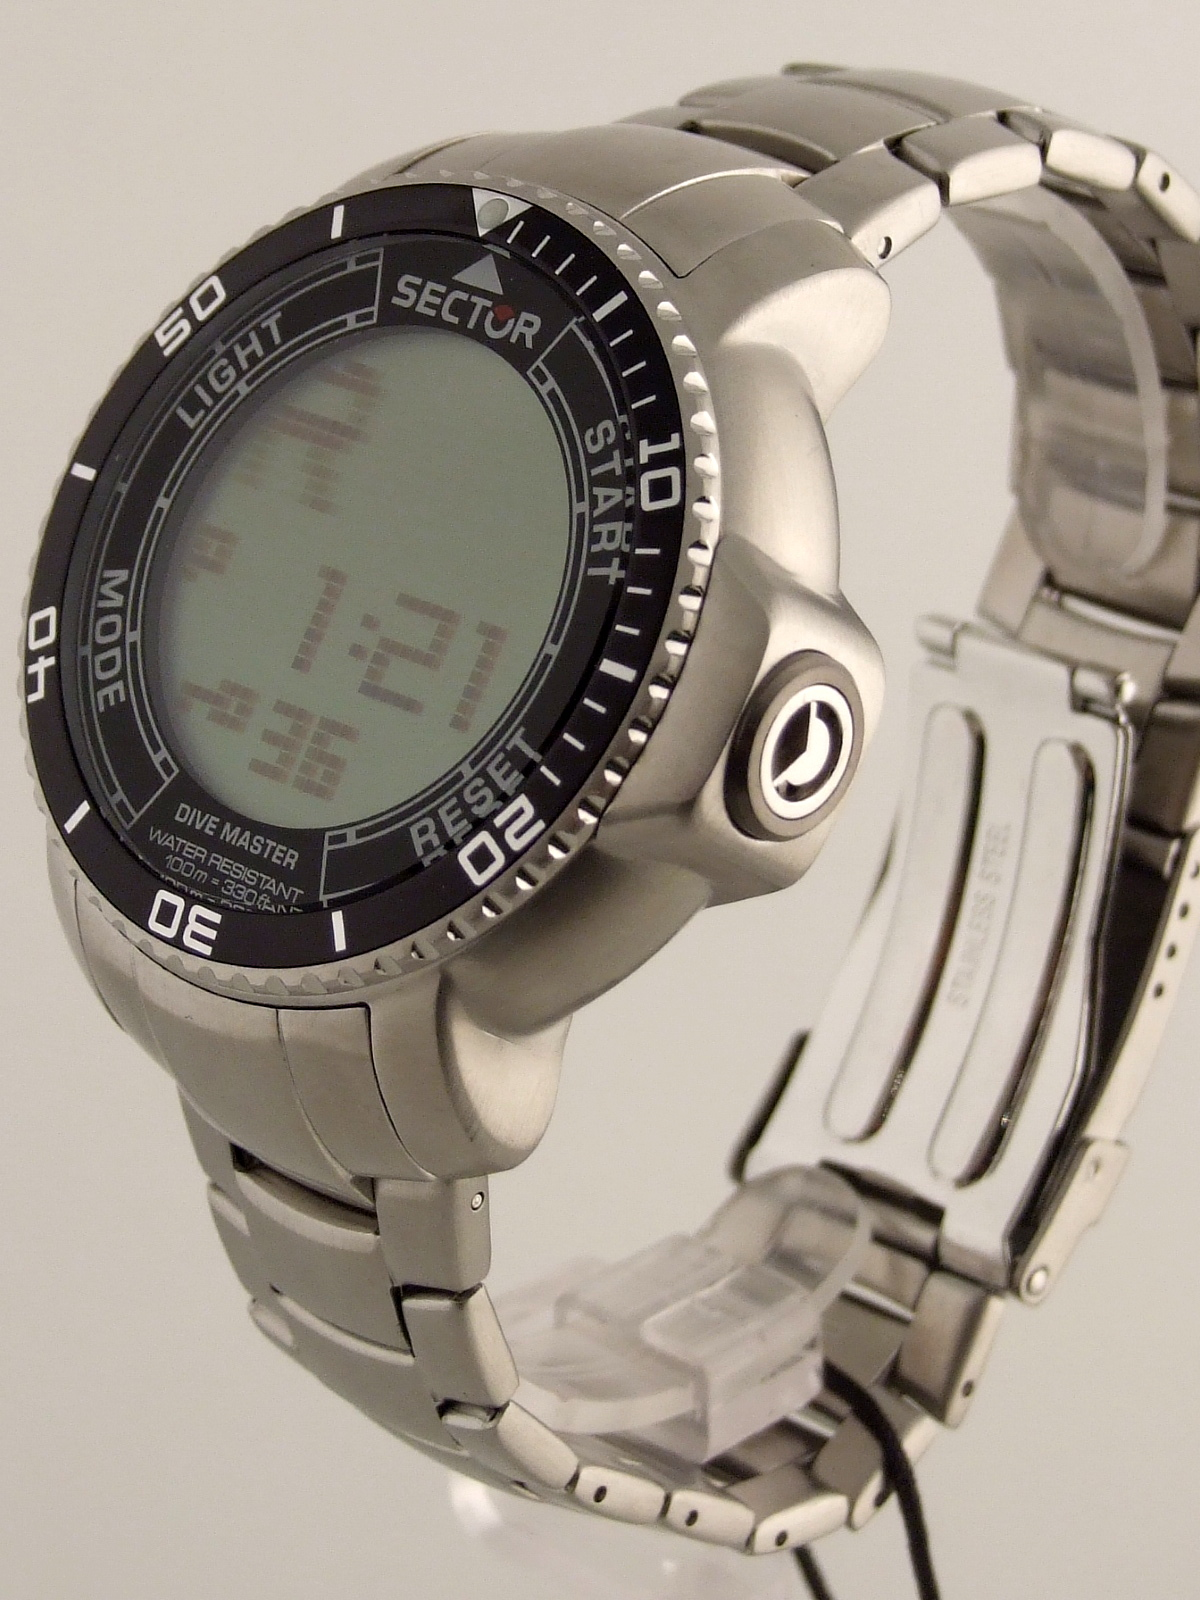 Sector dive master anadigit touch scroll compass alarm men - Sector dive master ...